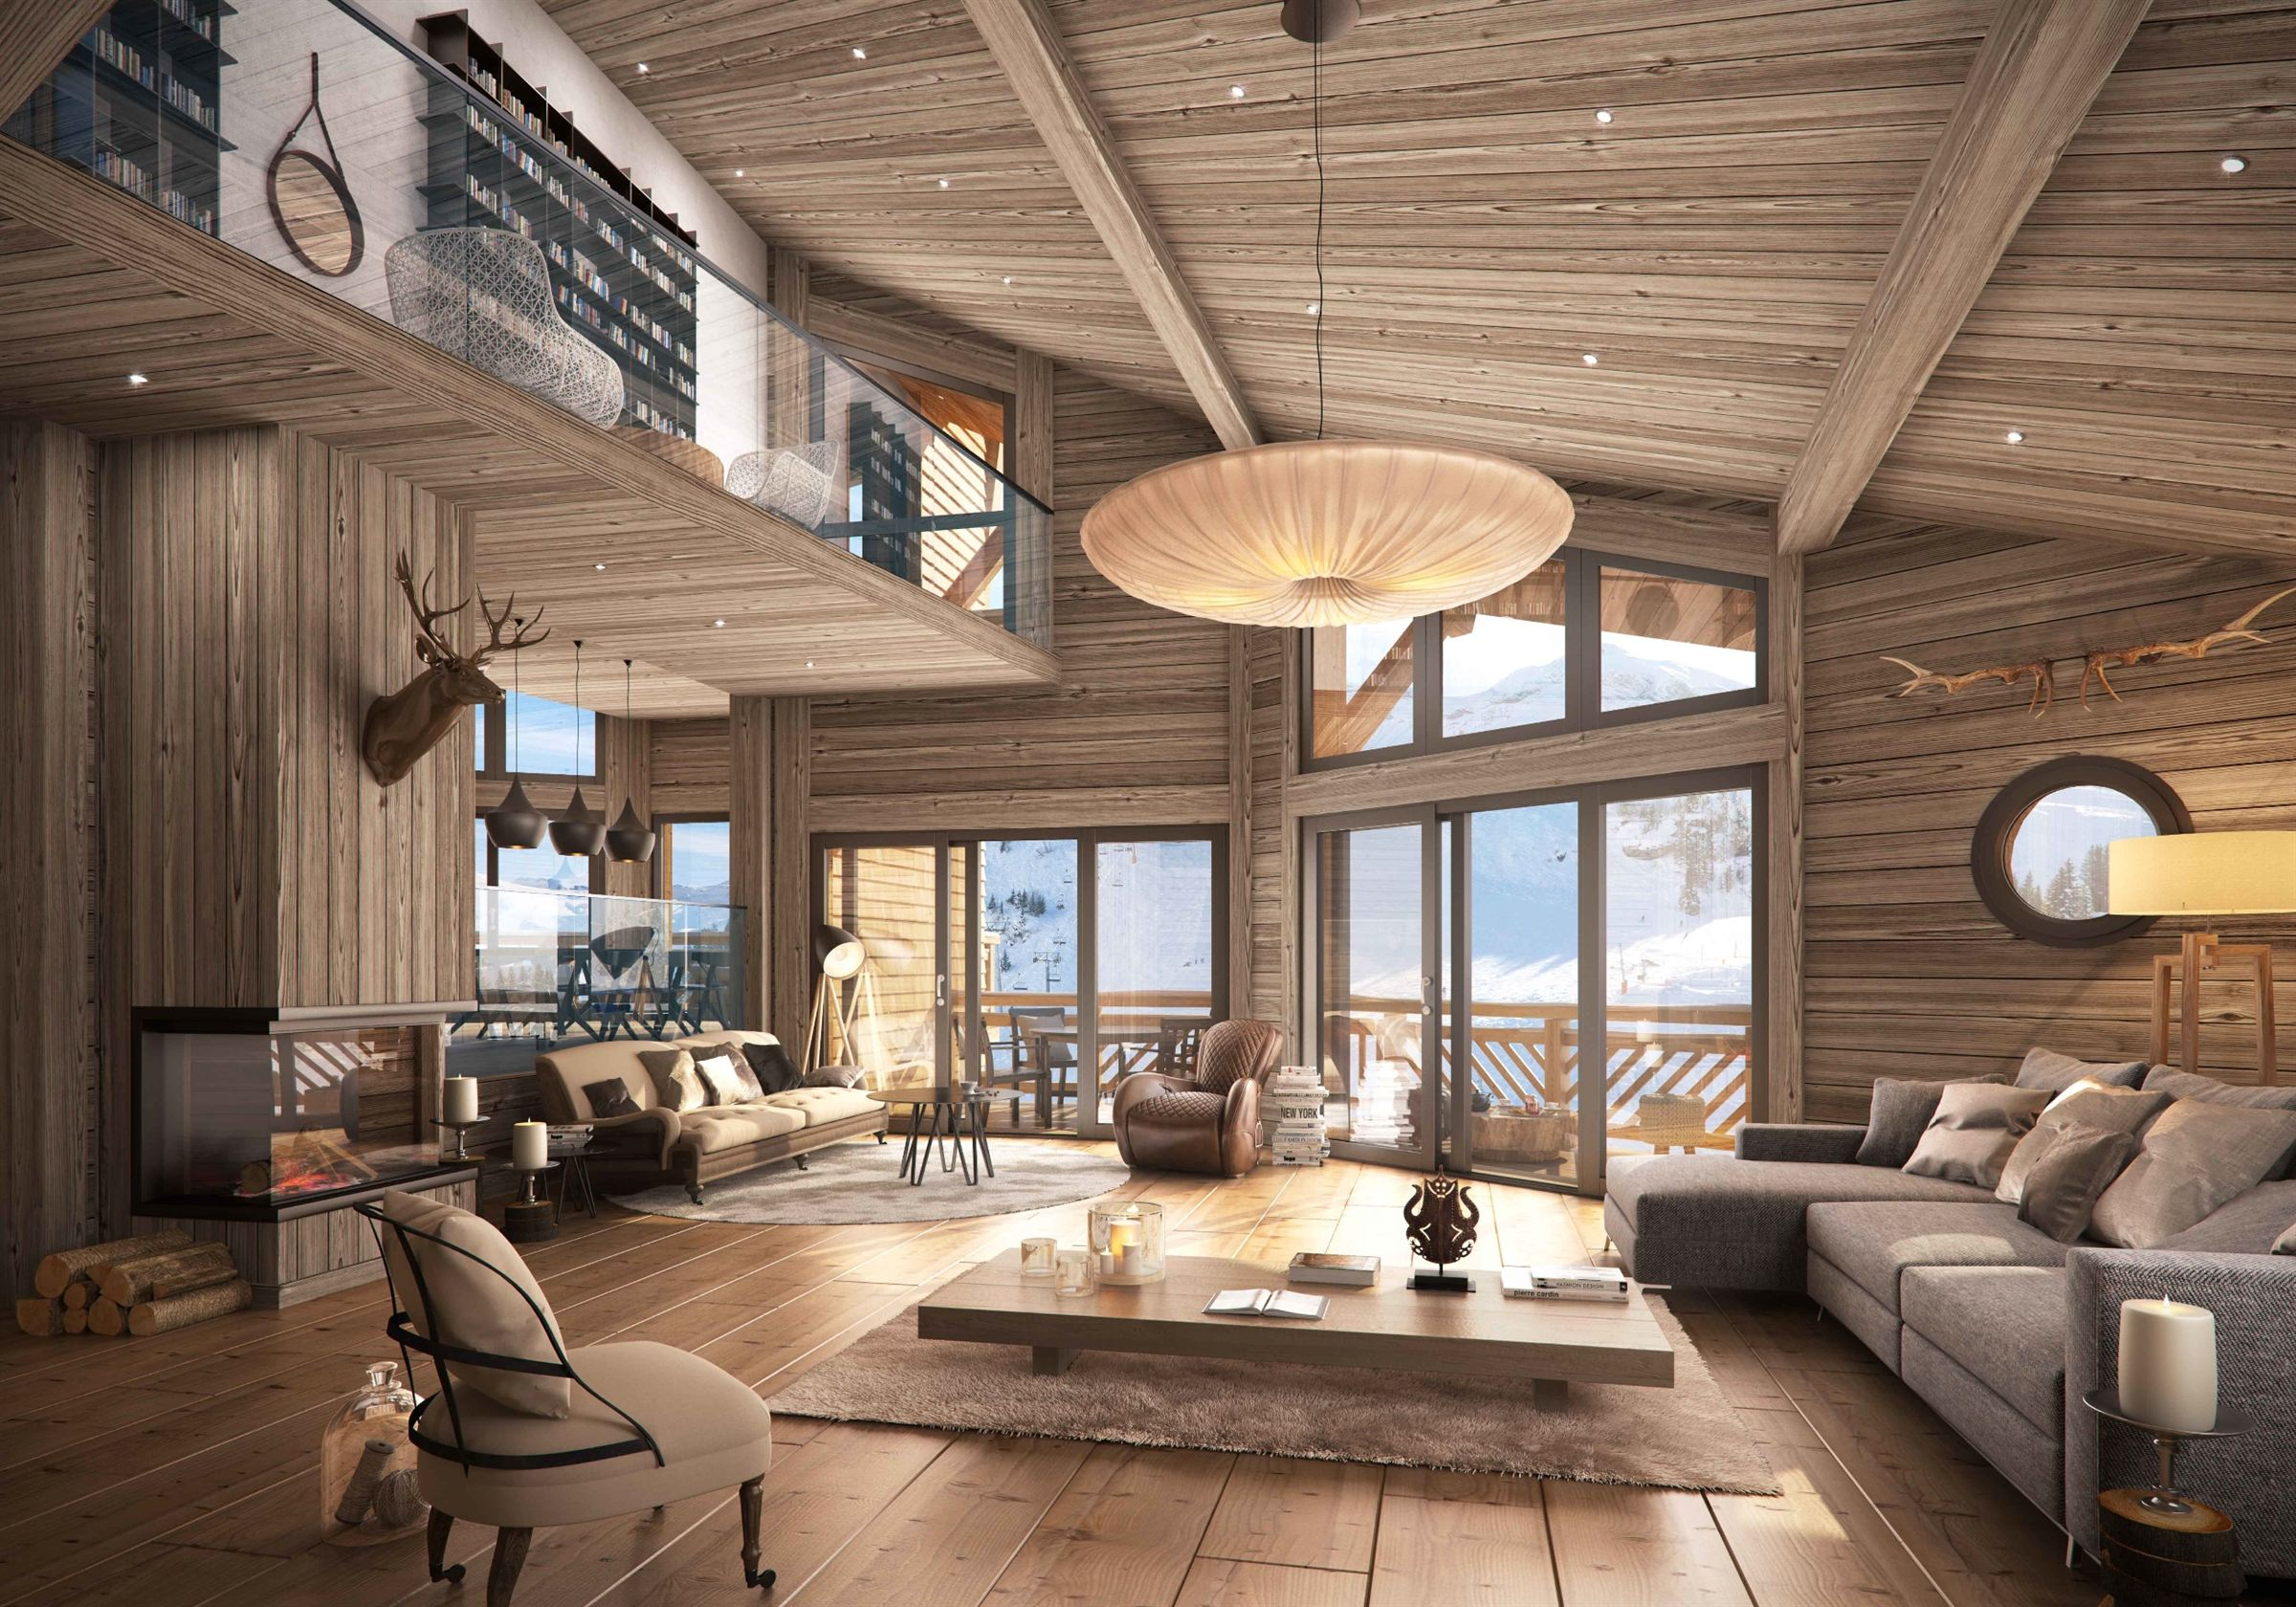 Single Family Home for Sale at Chalet Morzine, Rhone-Alpes, 74110 France